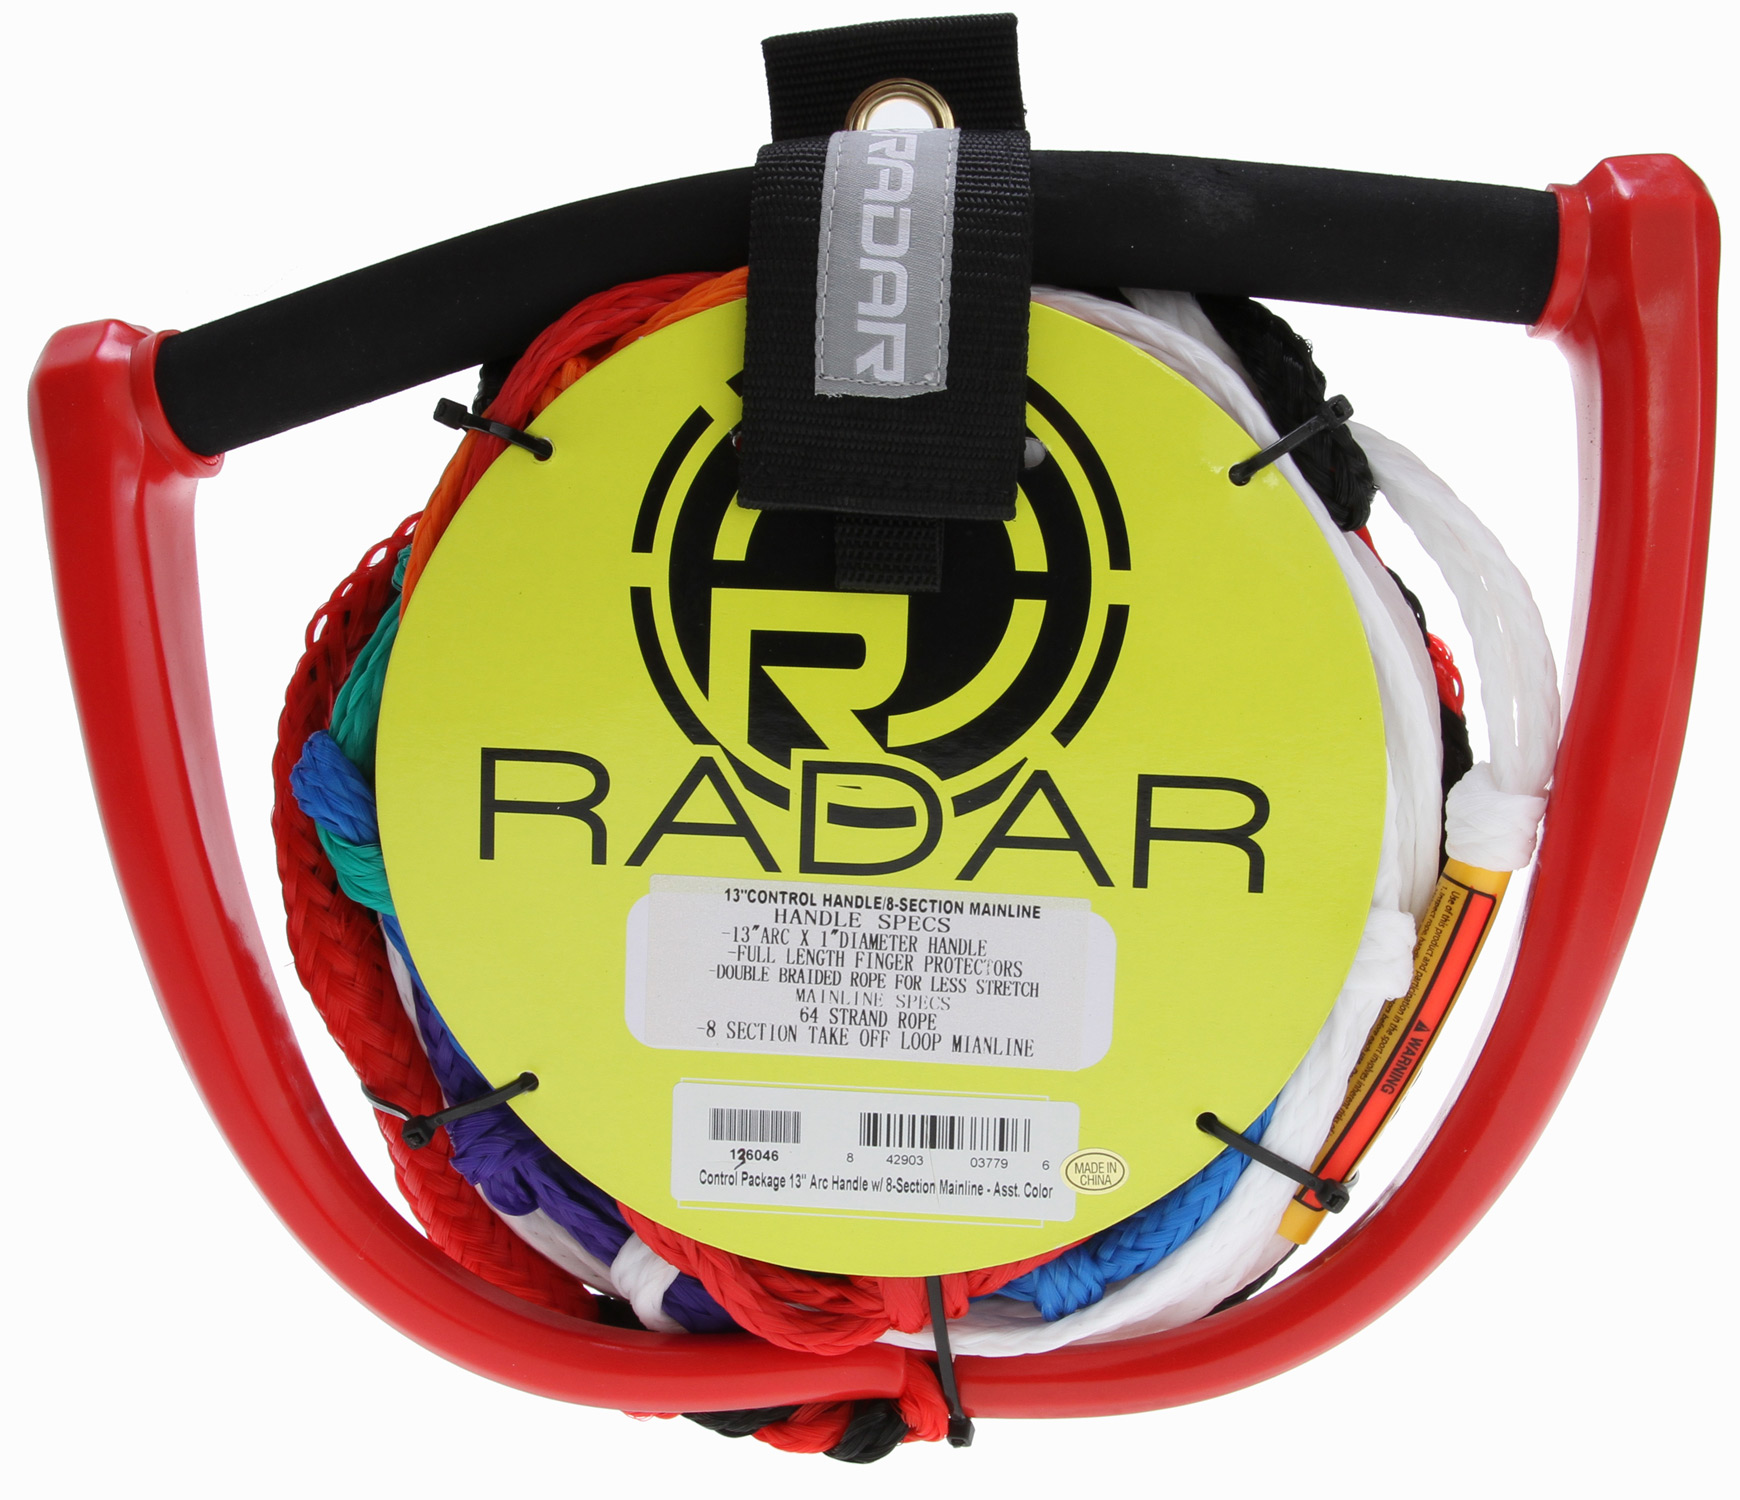 "Wake Key Features of the Radar Control Package 13"" Arc Handle w/ 8 Section Main Line Assorted: 13"" Arc handle. Full Length Finger Protectors 64-Strand 8-Section Mainline for durability Pre-Stretched Assorted colors - $54.99"